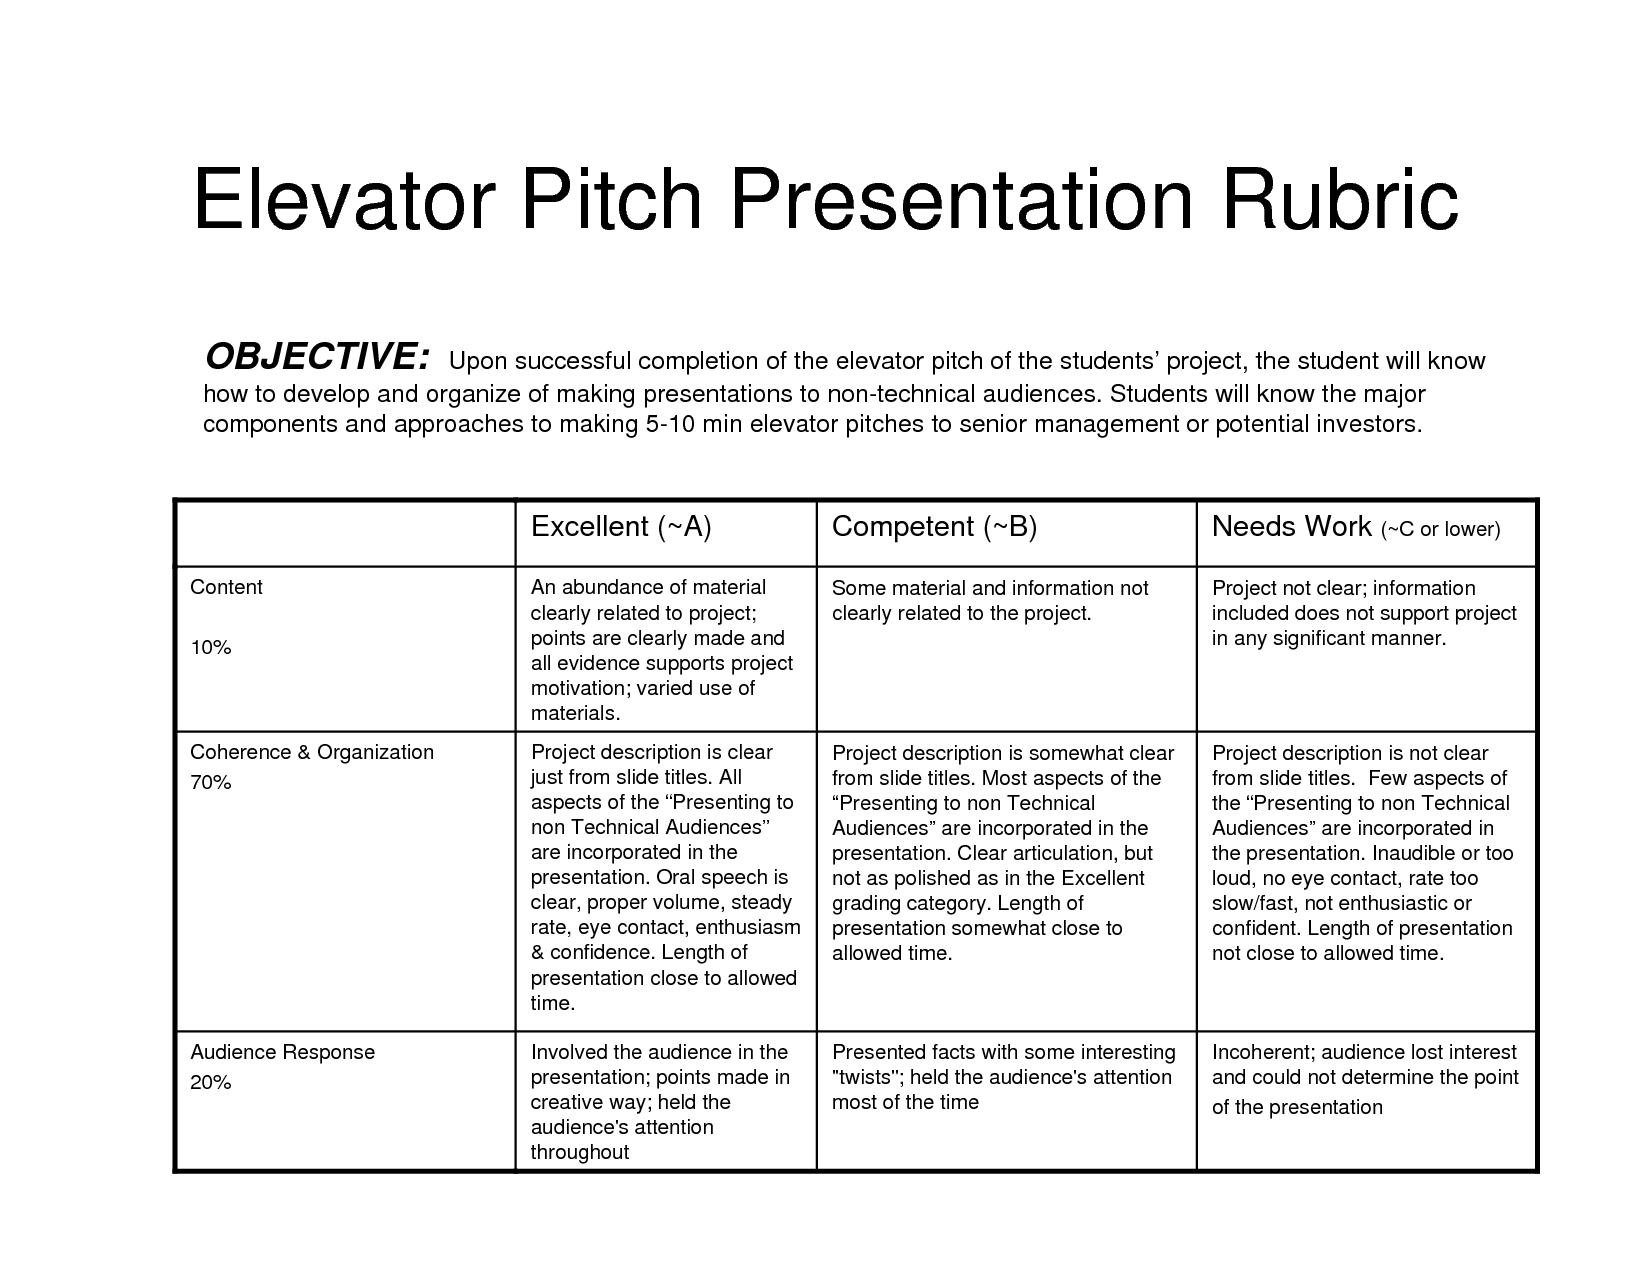 Elevator Pitches Examples Elevator pitch examples